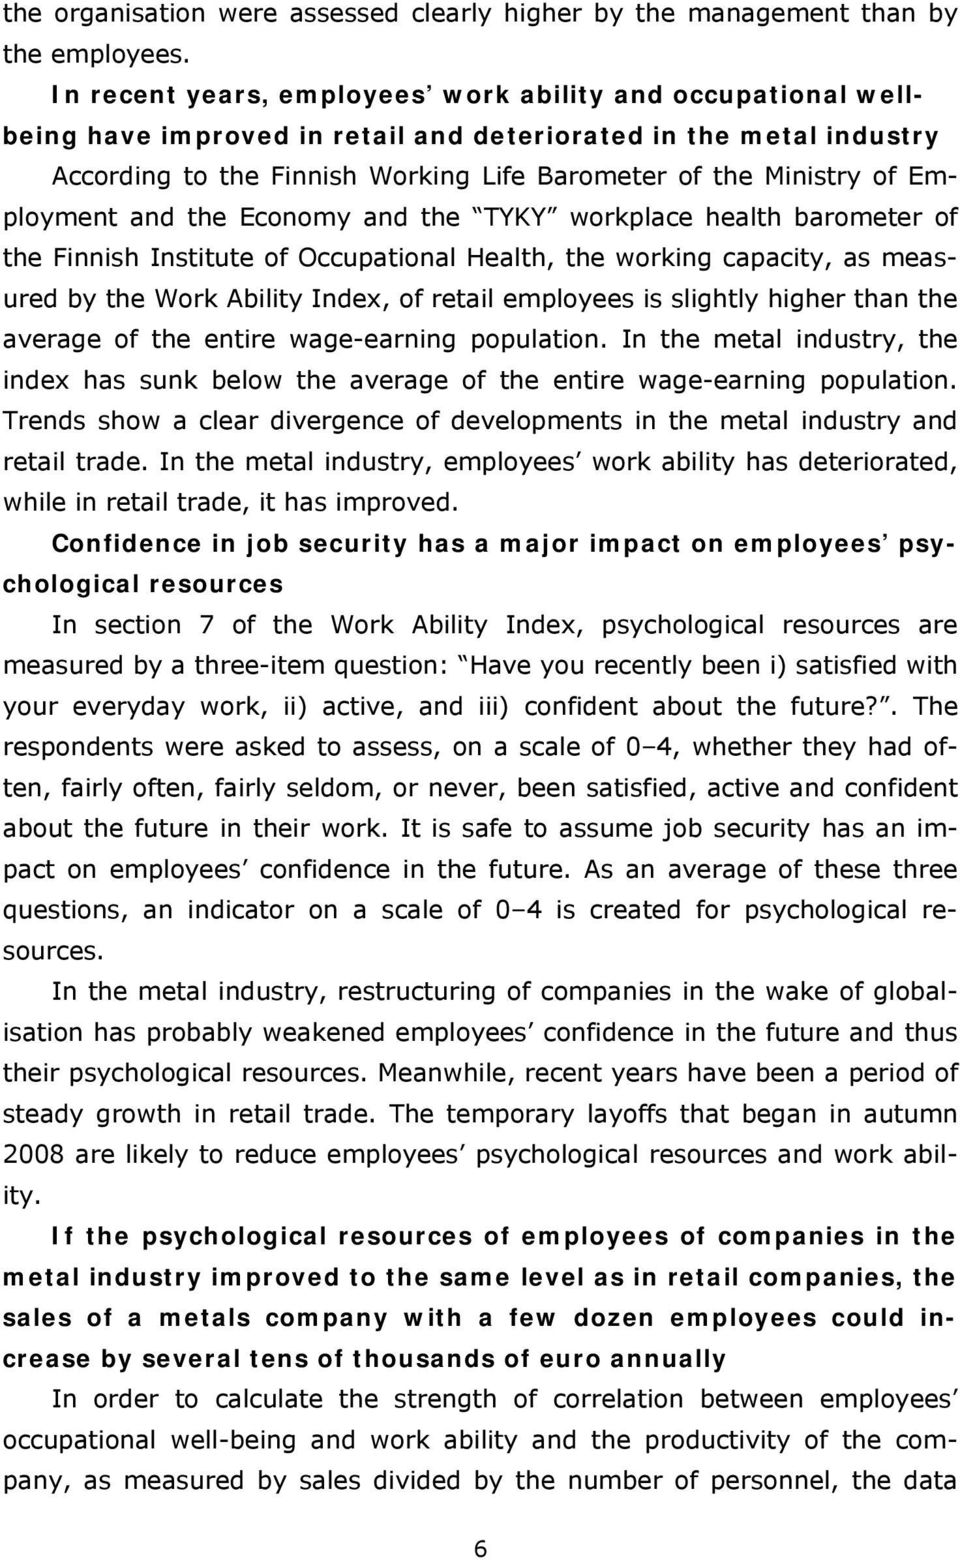 Employment and the Economy and the TYKY workplace health barometer of the Finnish Institute of Occupational Health, the working capacity, as measured by the Work Ability Index, of retail employees is